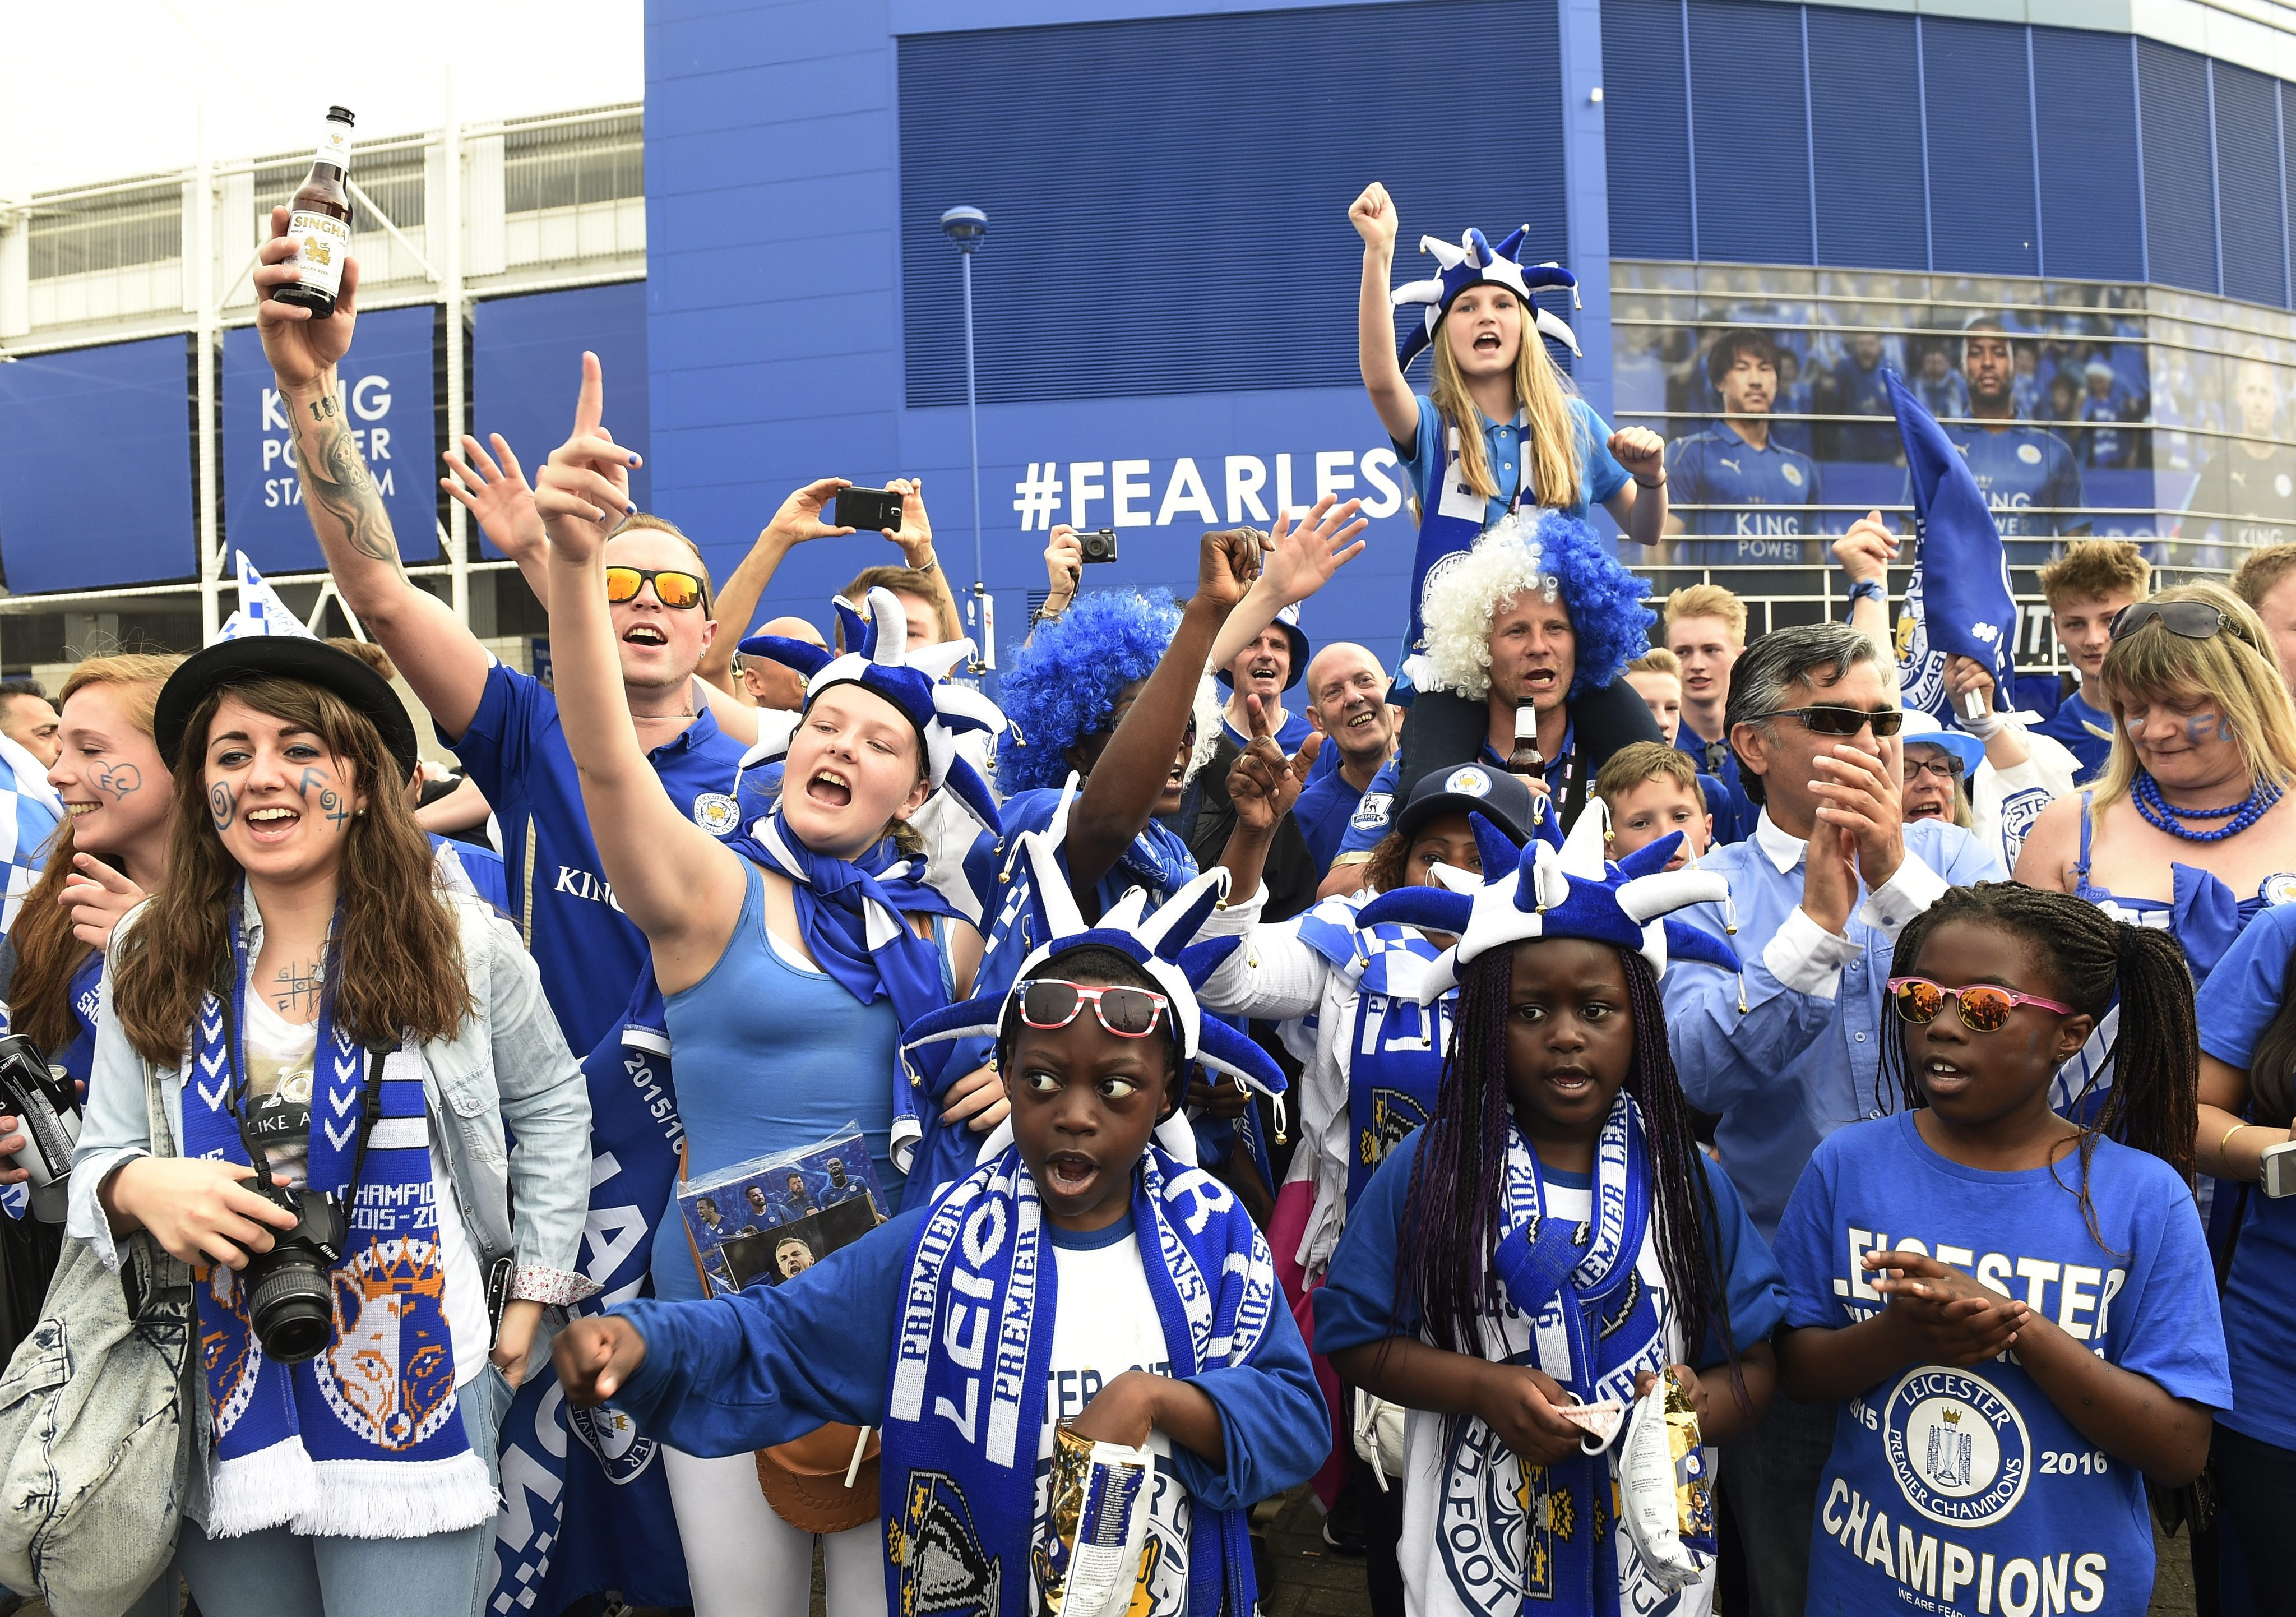 Leicester supporters celebrate winning the title